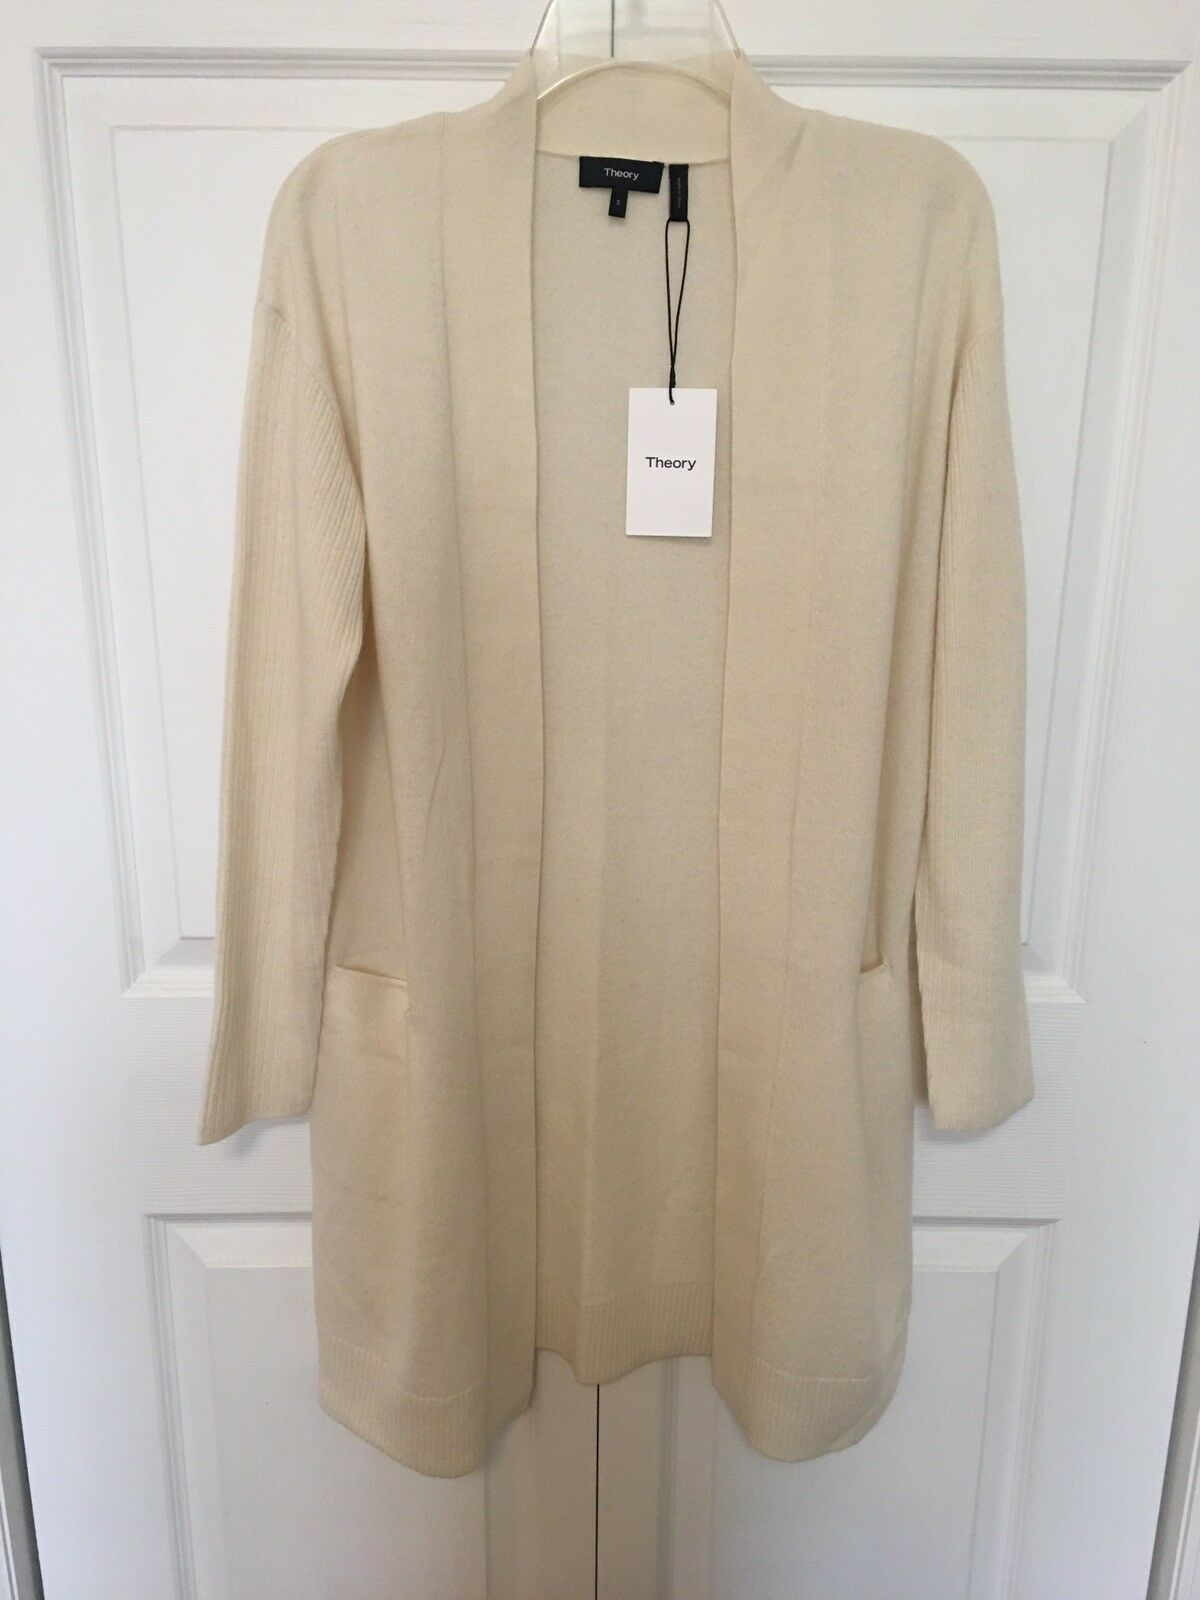 NWT Theory Rib Sleeve 100% Cashmere Cashmere Cashmere Cardigan Size S Small Warm Ivory fb9be4